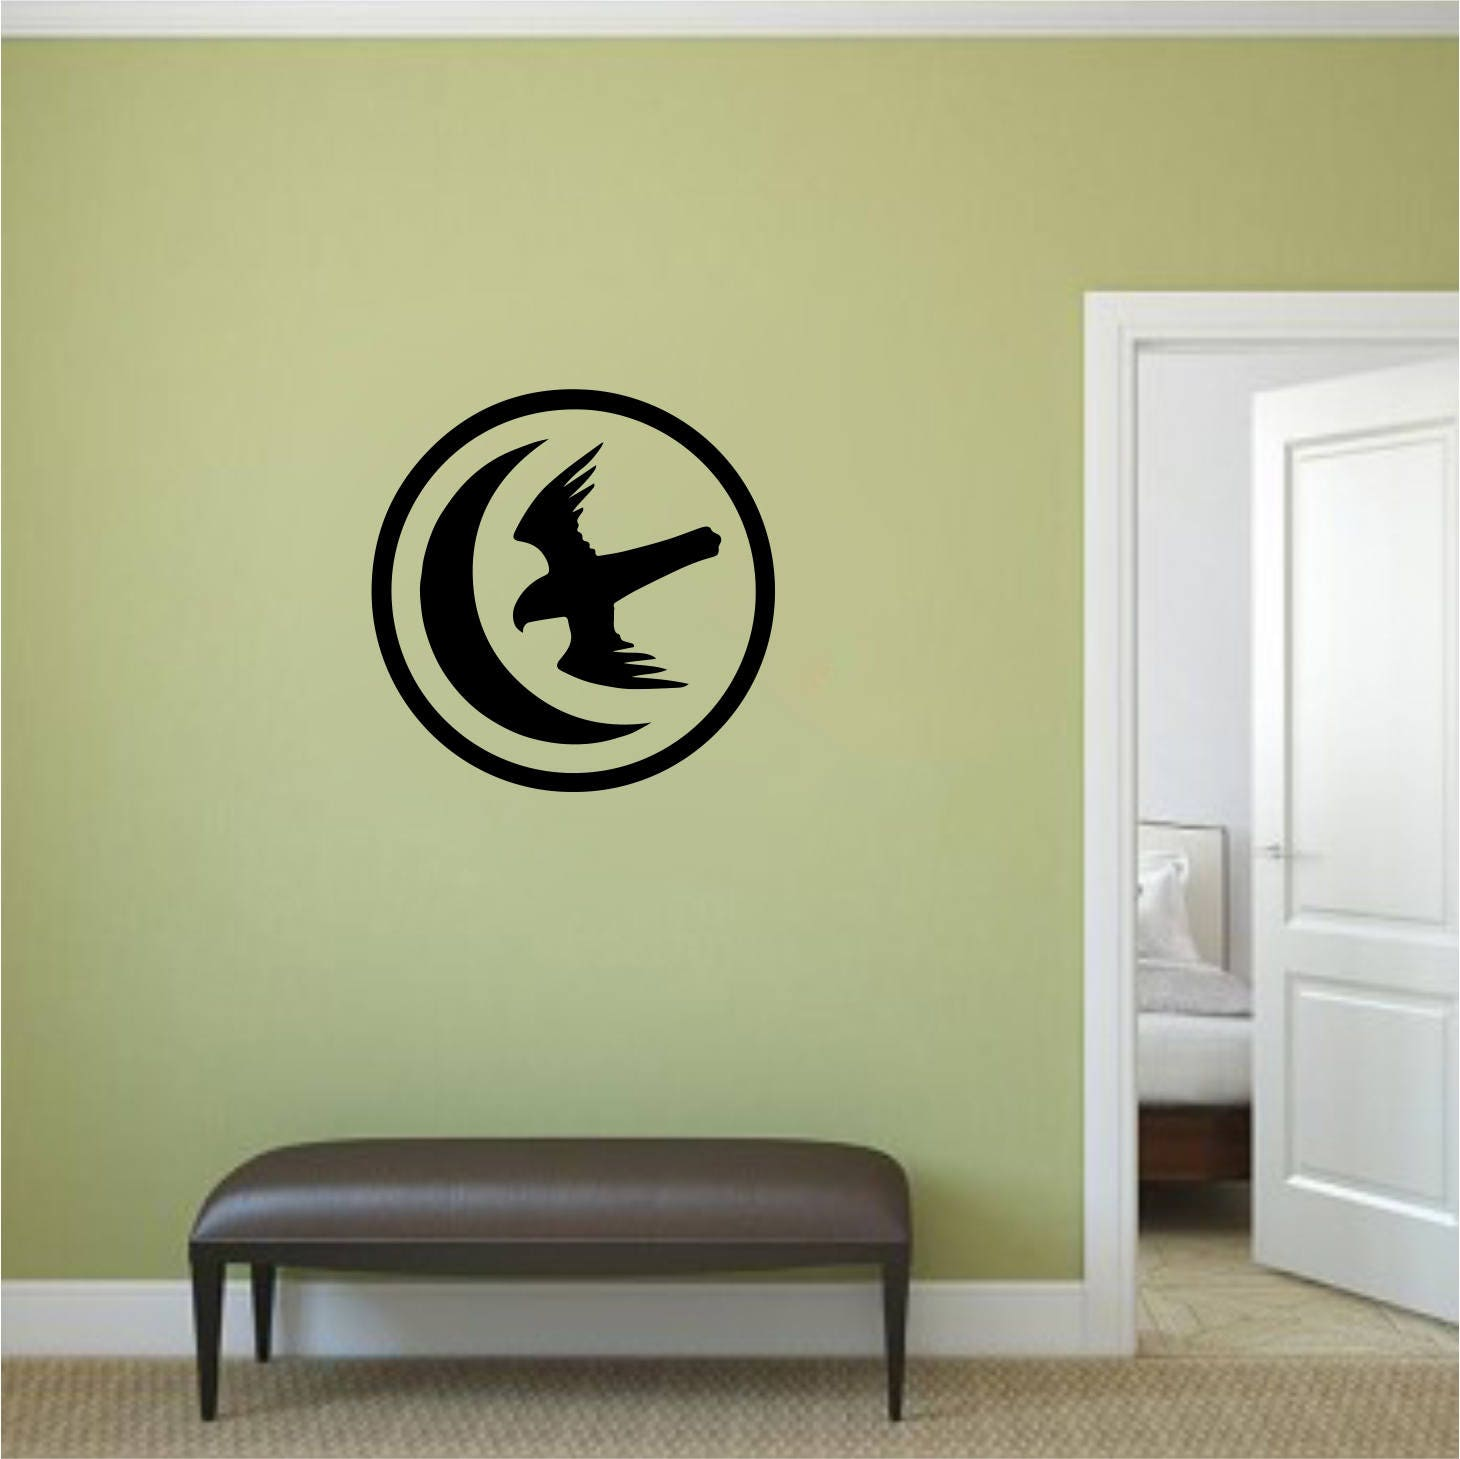 Beautiful Game Of Thrones Wall Decor Collection - The Wall Art ...